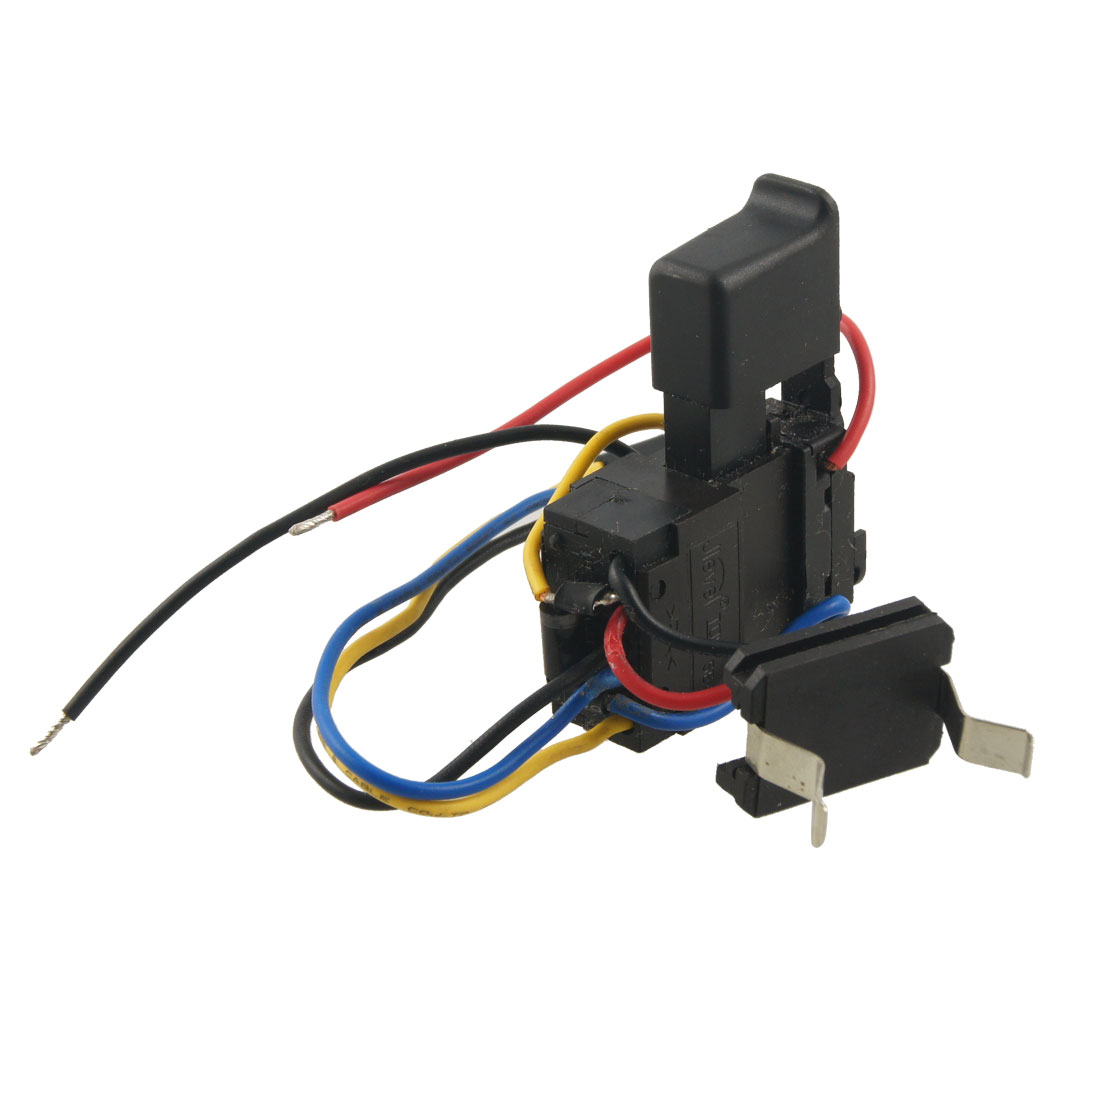 Black 7.2-24V DC 12A Electric Tool Spare Part Charge Speed Switch